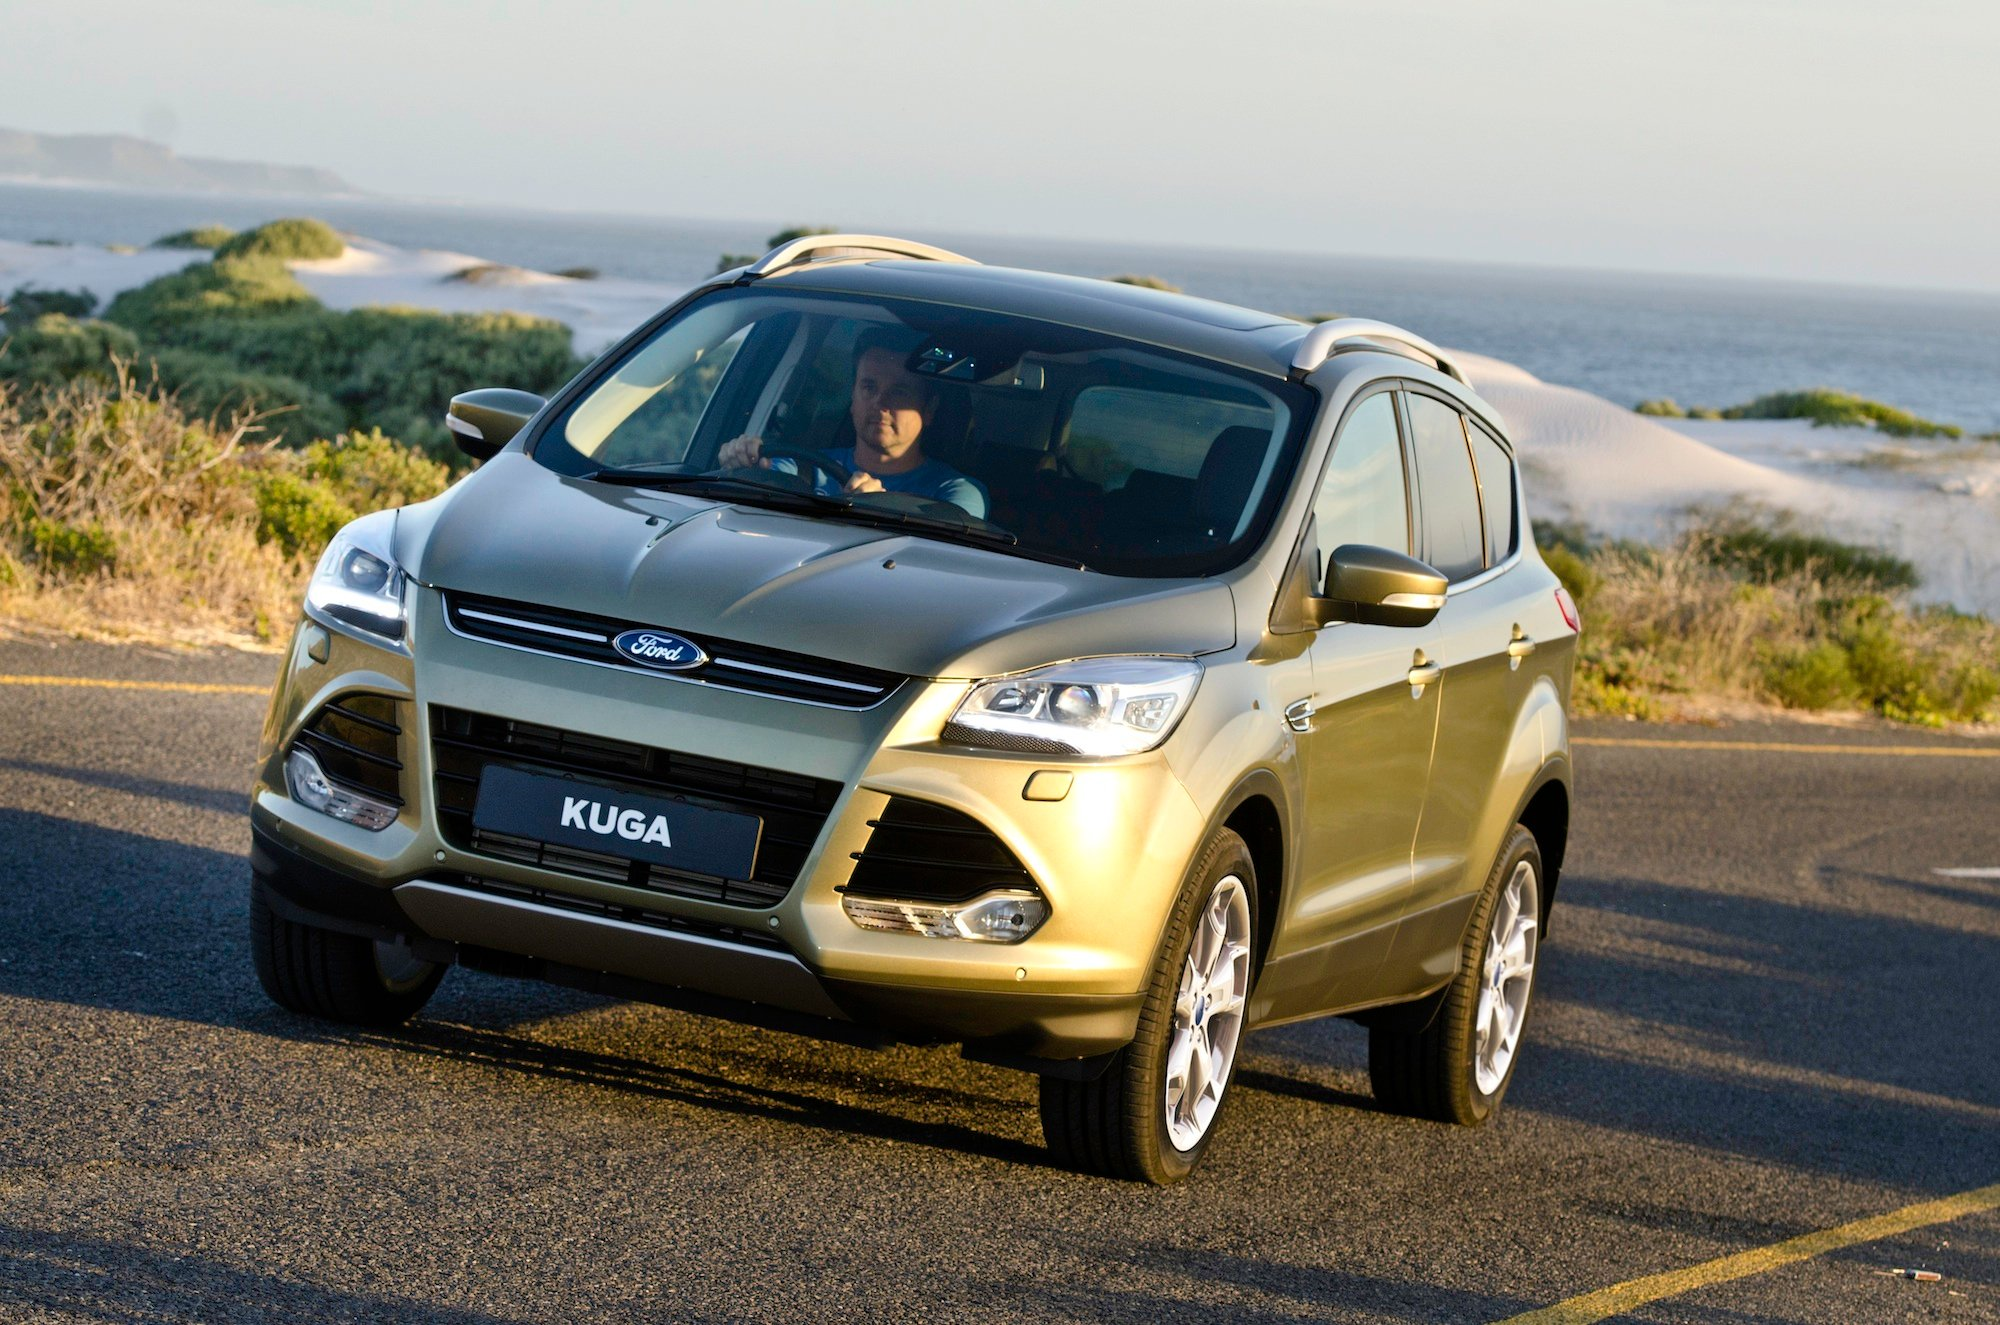 ford kuga st hot suv variant a possibility photos. Black Bedroom Furniture Sets. Home Design Ideas